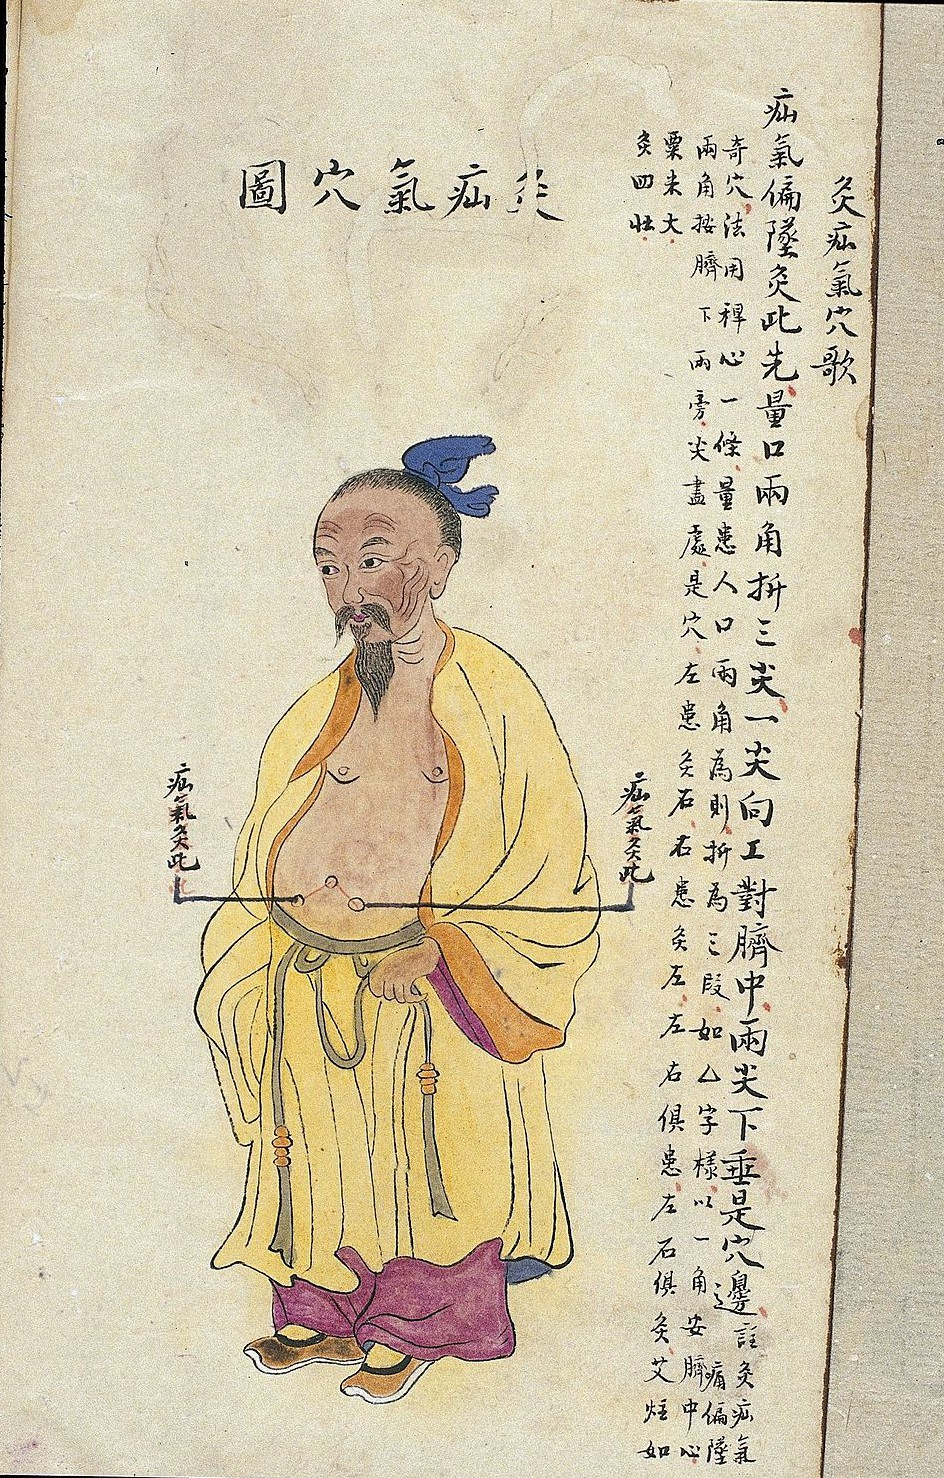 Acu-moxa point chart, showing the hernia (shanqi) point, fromChuanwu lingji lu(Record of Sovereign Teachings), by Zhang Youheng, a treatise on acu-moxa in two volumes. (Image: Faeboy via Welcome Images/cc 4.0)